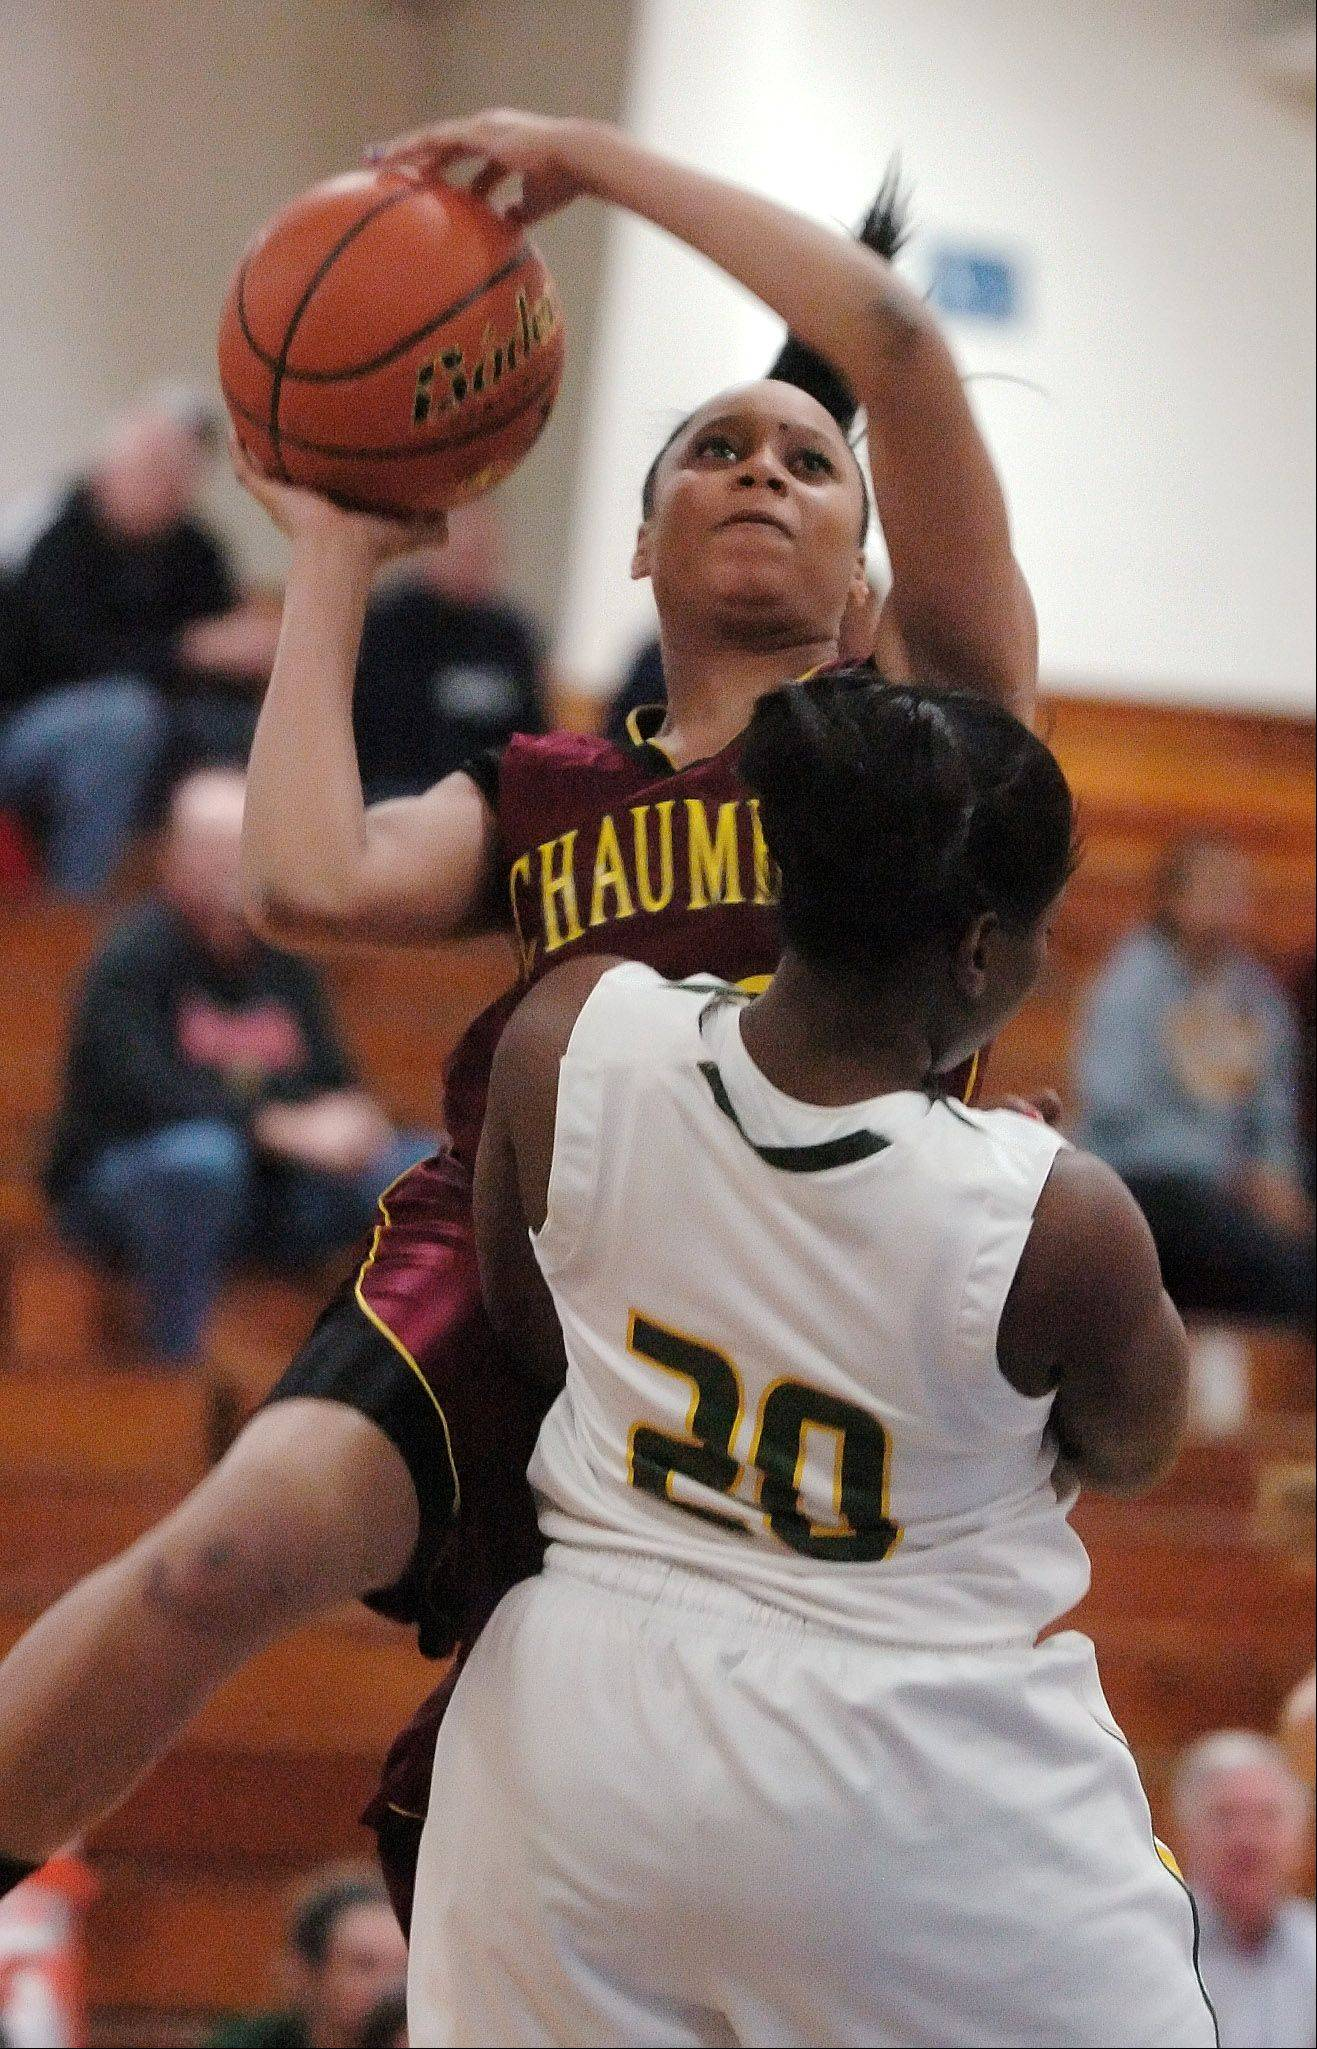 Jada Blackwell of Schaumburg heads up for a shot over Erica Jordan of Waubonsie Valley during the Bill Neibch Holiday girls basketball tournament Monday, December 26, 2011, at Wheaton North High School.